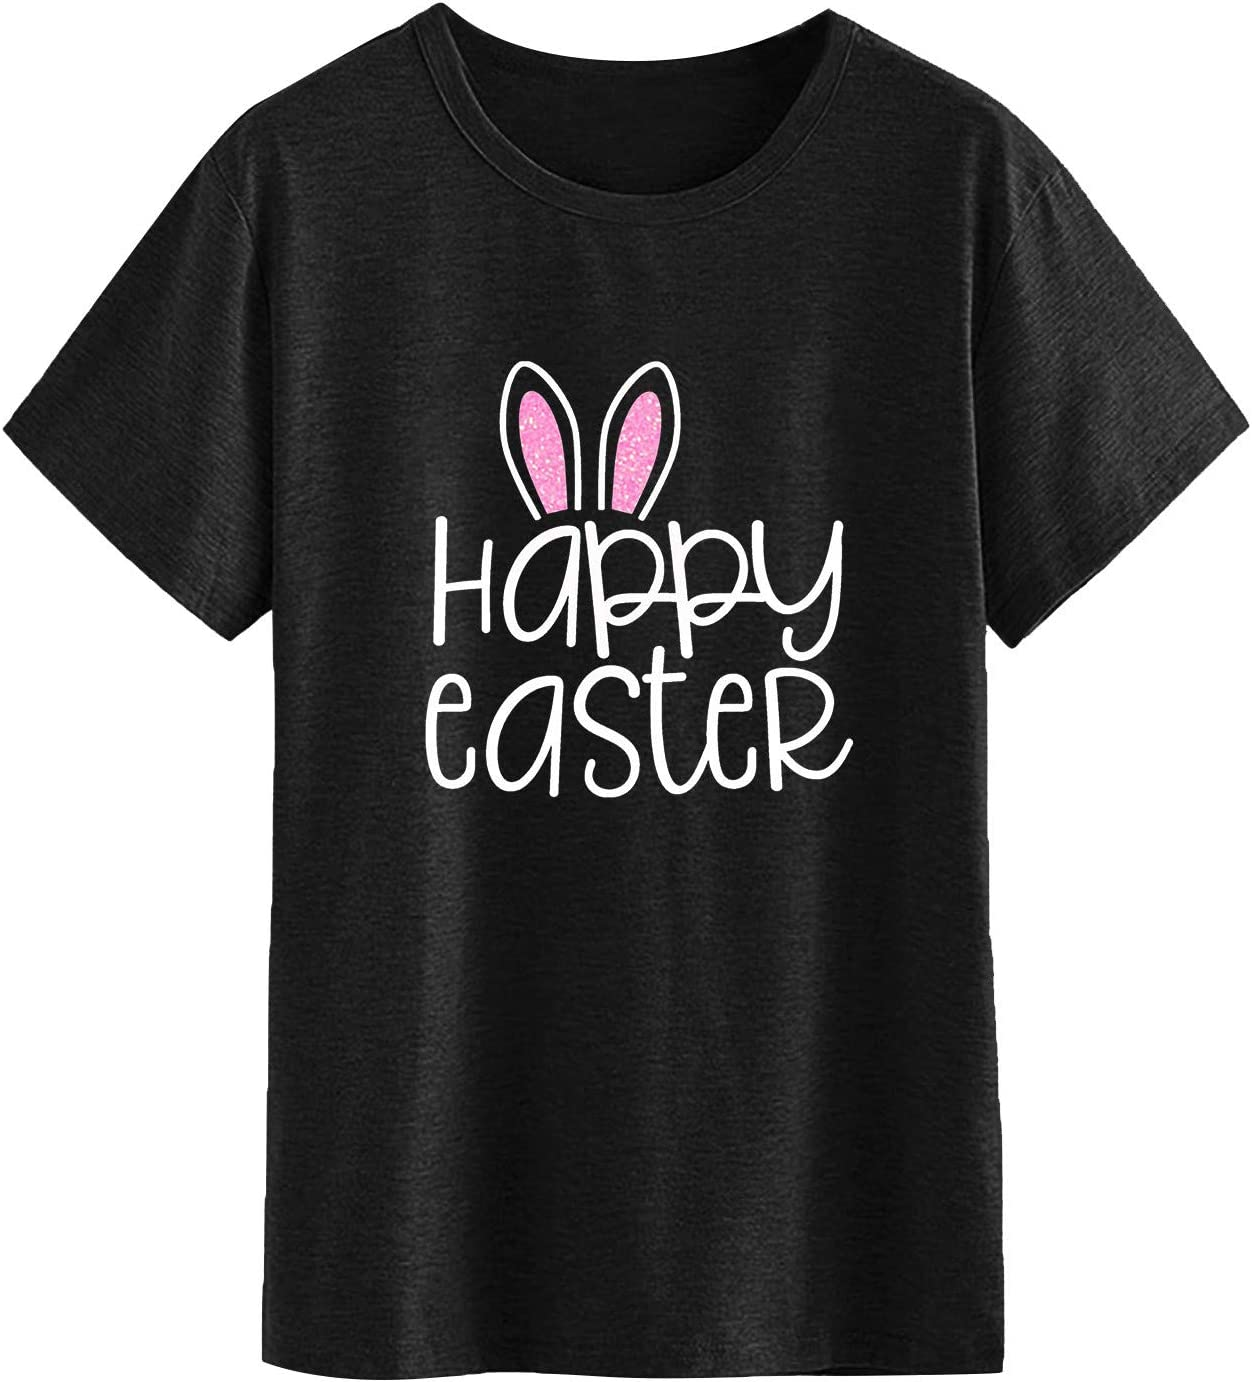 Animer and price revision Shan-S Happy Easter Letter 2021 new Print T Women's Soft Casual for Shirt